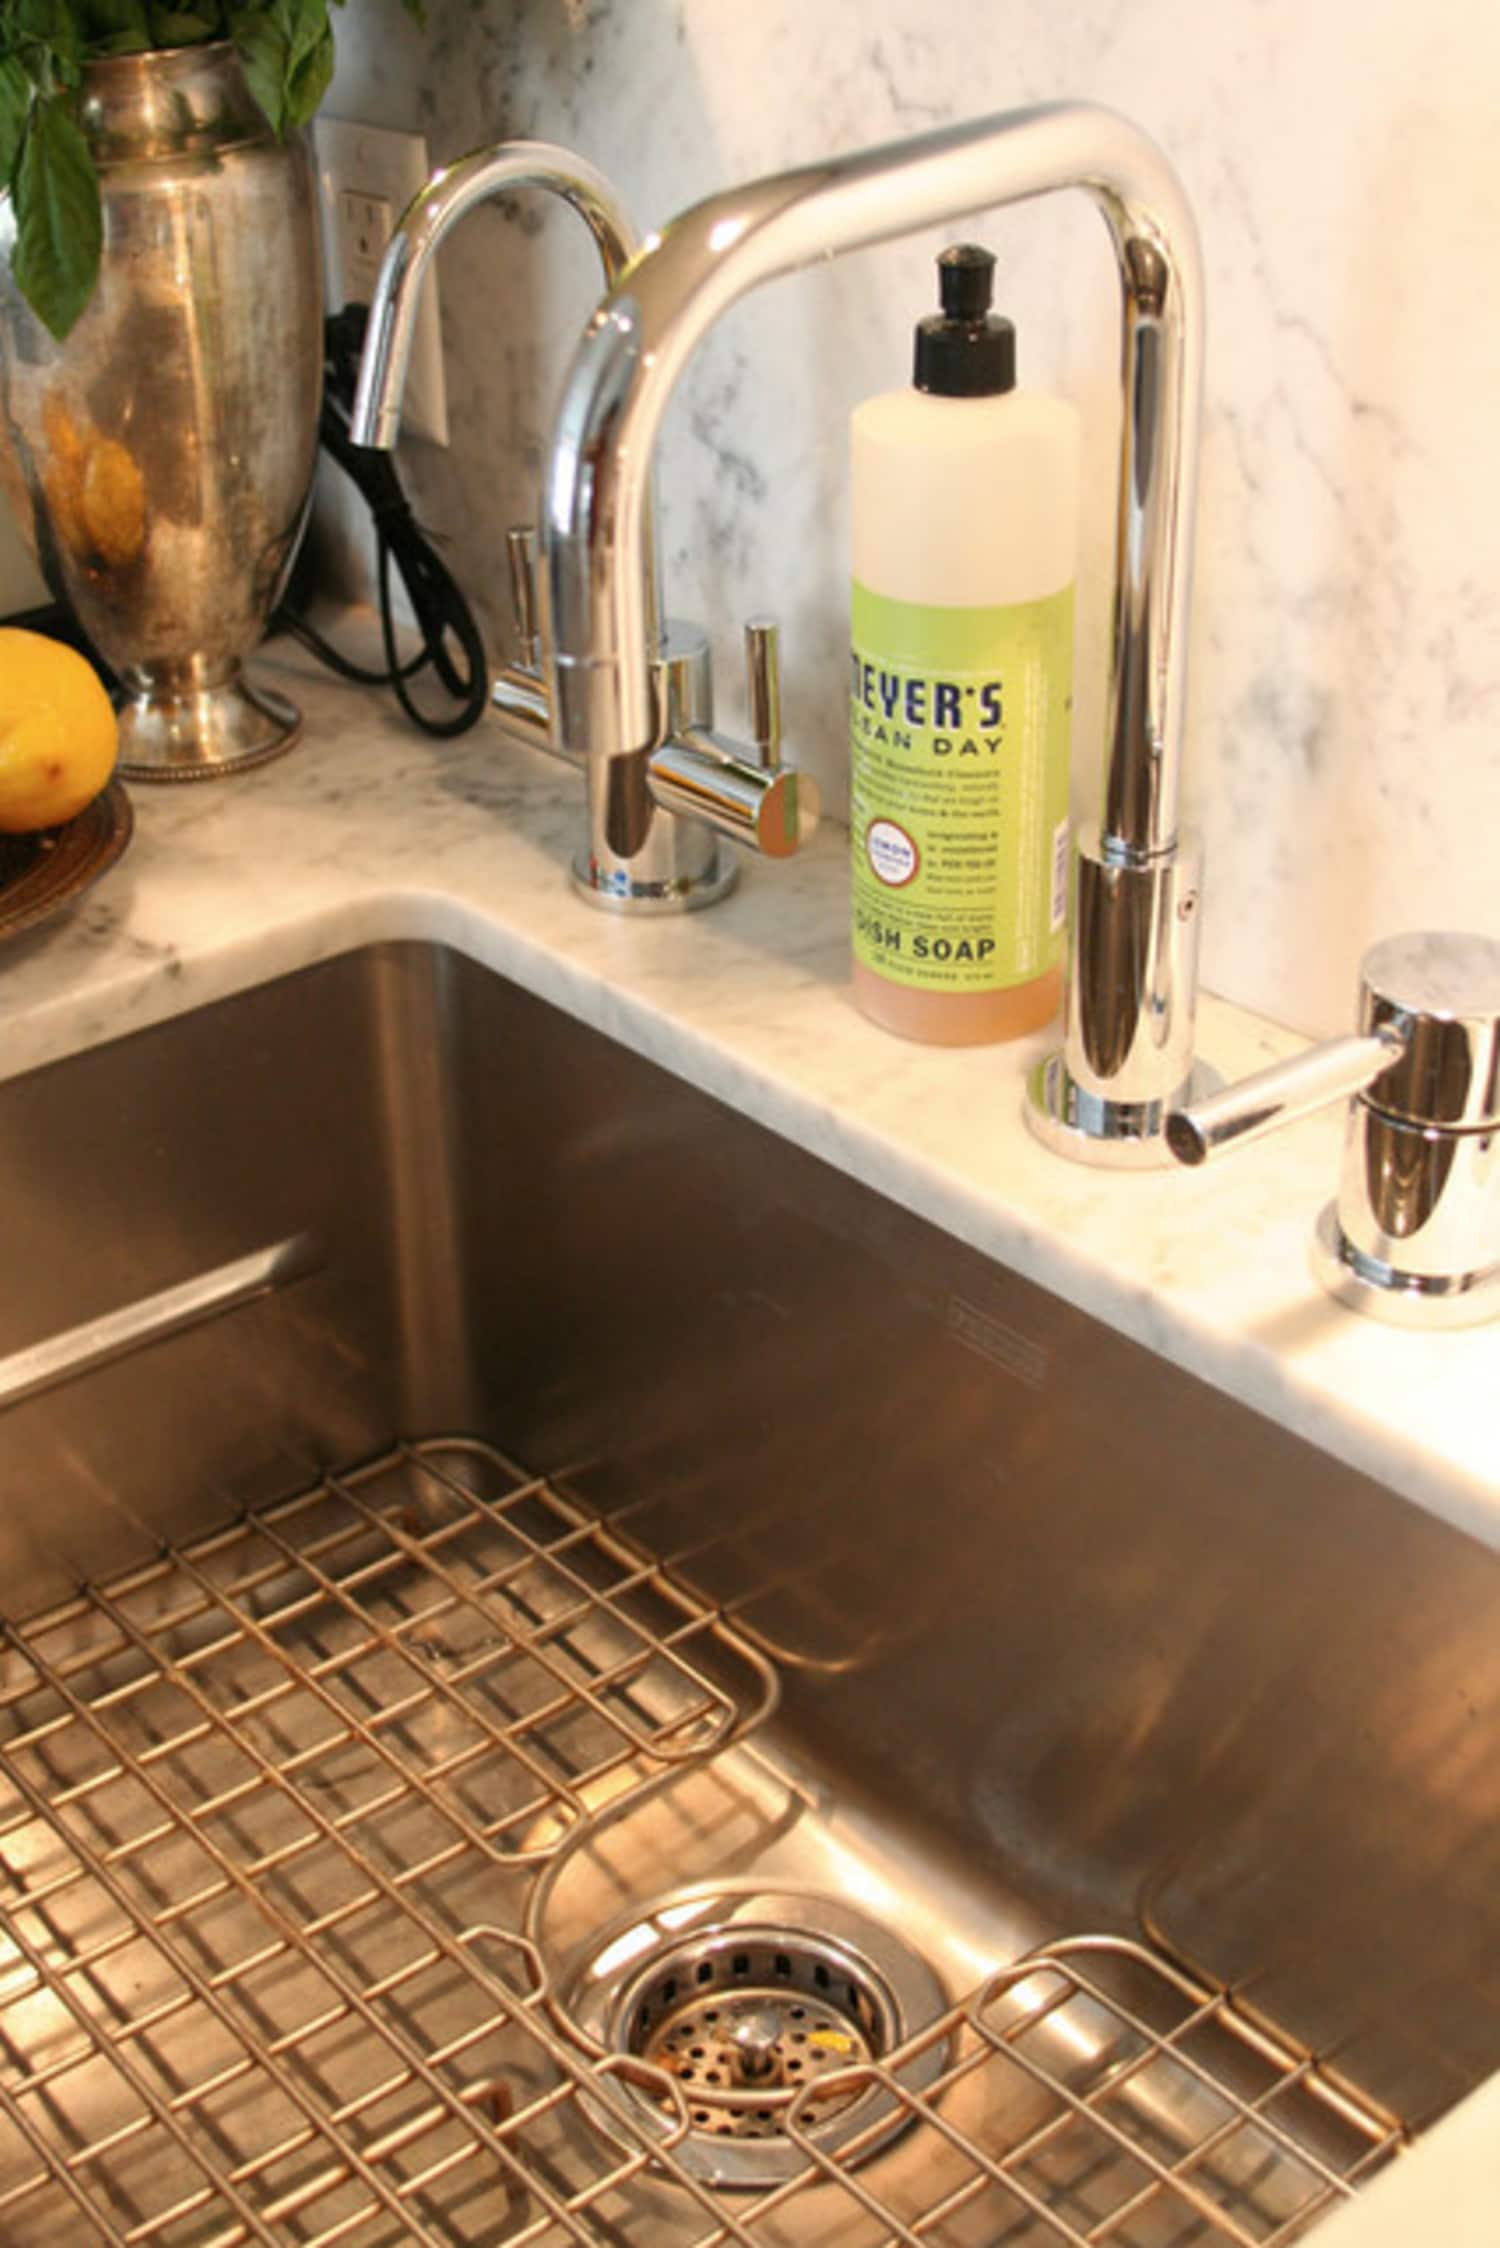 6 Things You Need to Know About Undermount Kitchen Sinks | Kitchn on under the sink, under a sink, faucet leaking under sink, chemicals under sink, fix leaking pipe under sink, removing drain pipe under sink, correct plumbing under sink, plumbing pipes under sink, replace plumbing under sink, pex under sink, plumbing underneath bathroom sink, 4 stage reverse osmosis under sink, replacing plumbing under bathroom sink,